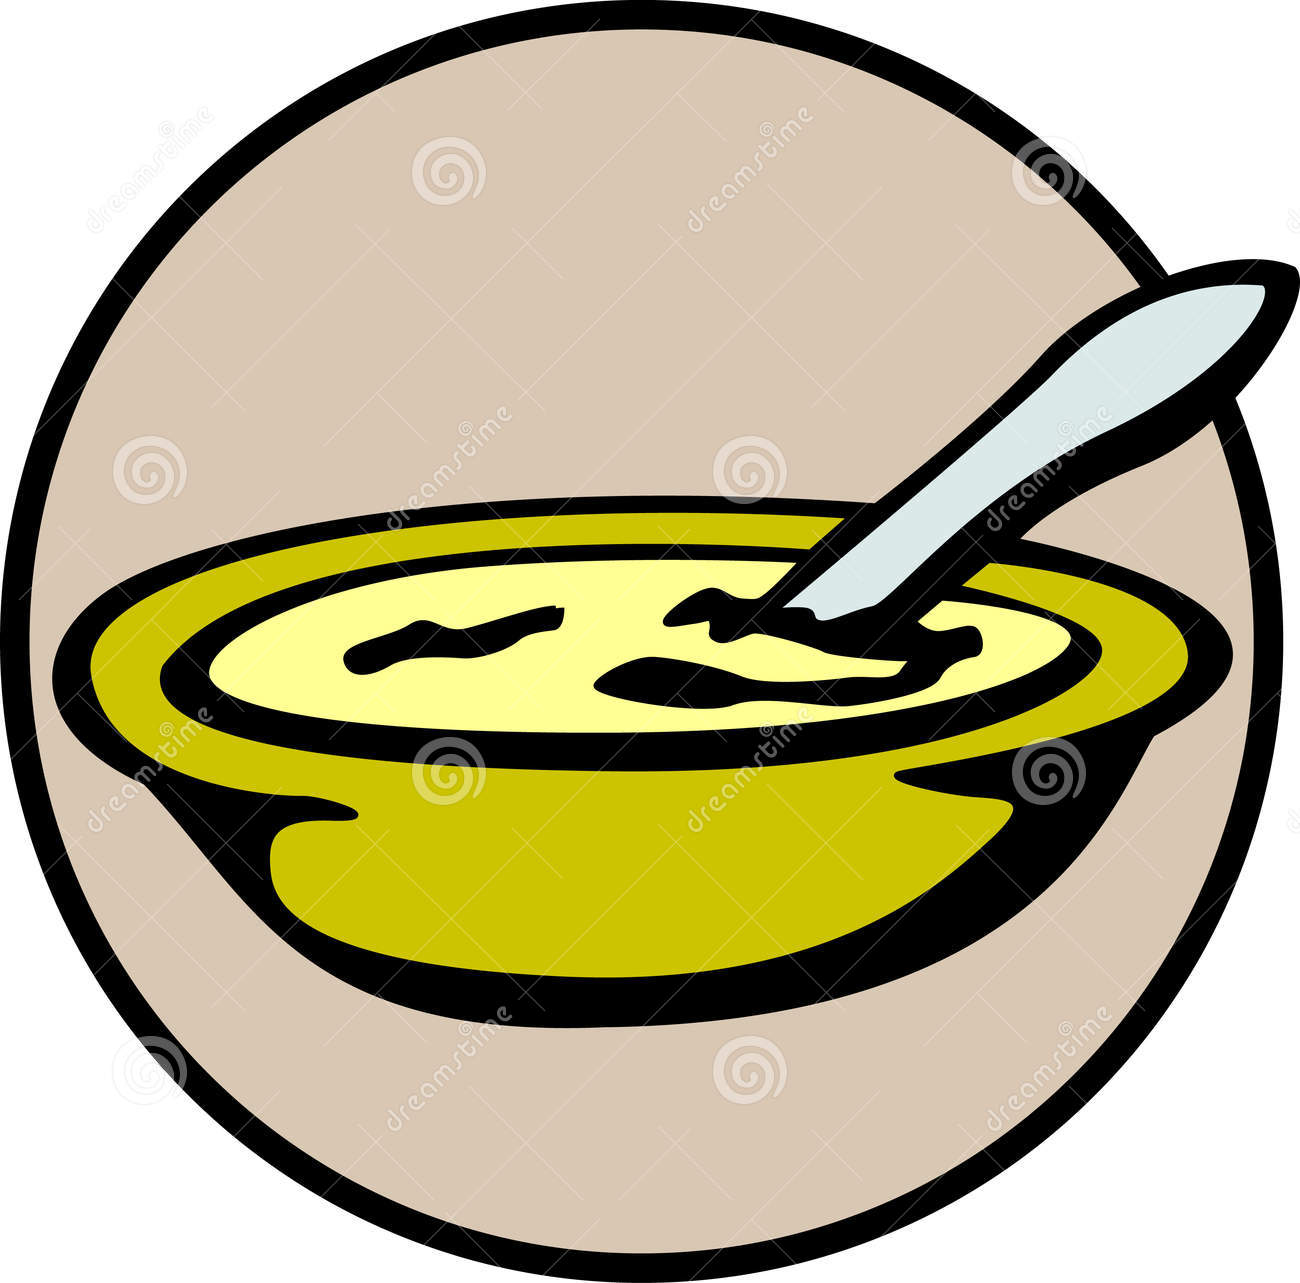 Cereal clipart yellow Cereal%20clipart Images Free Clipart Cereal